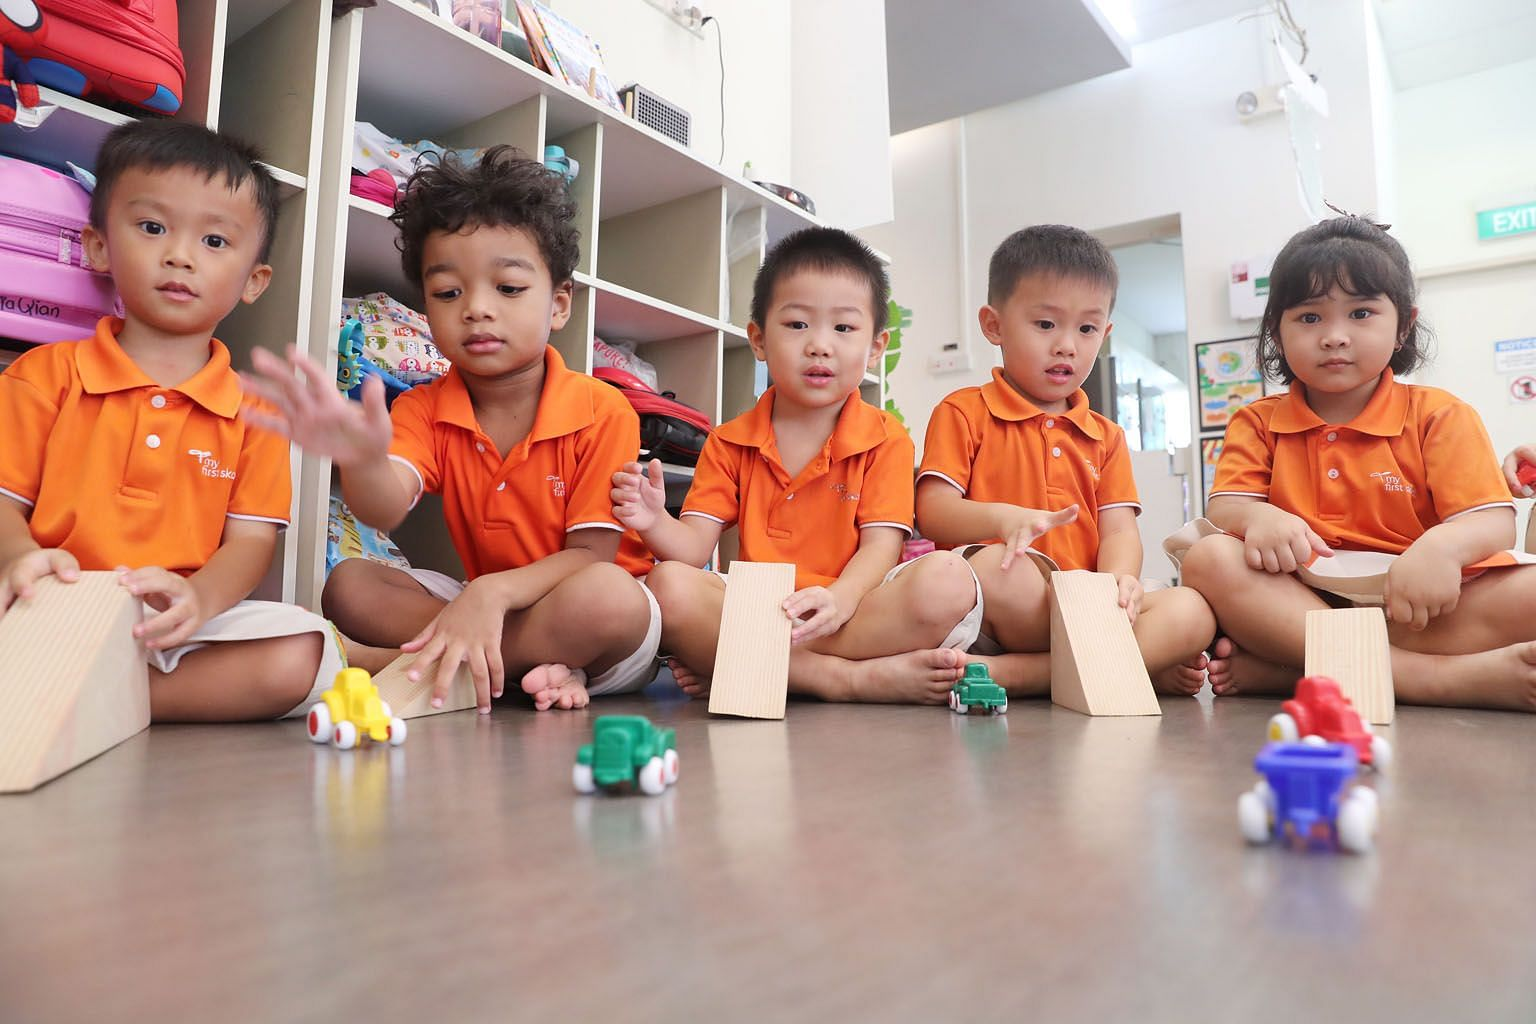 The study will track the well-being and learning of up to 100 children, from the time they are in Kindergarten 1 to when they begin Primary 1 in 2021.